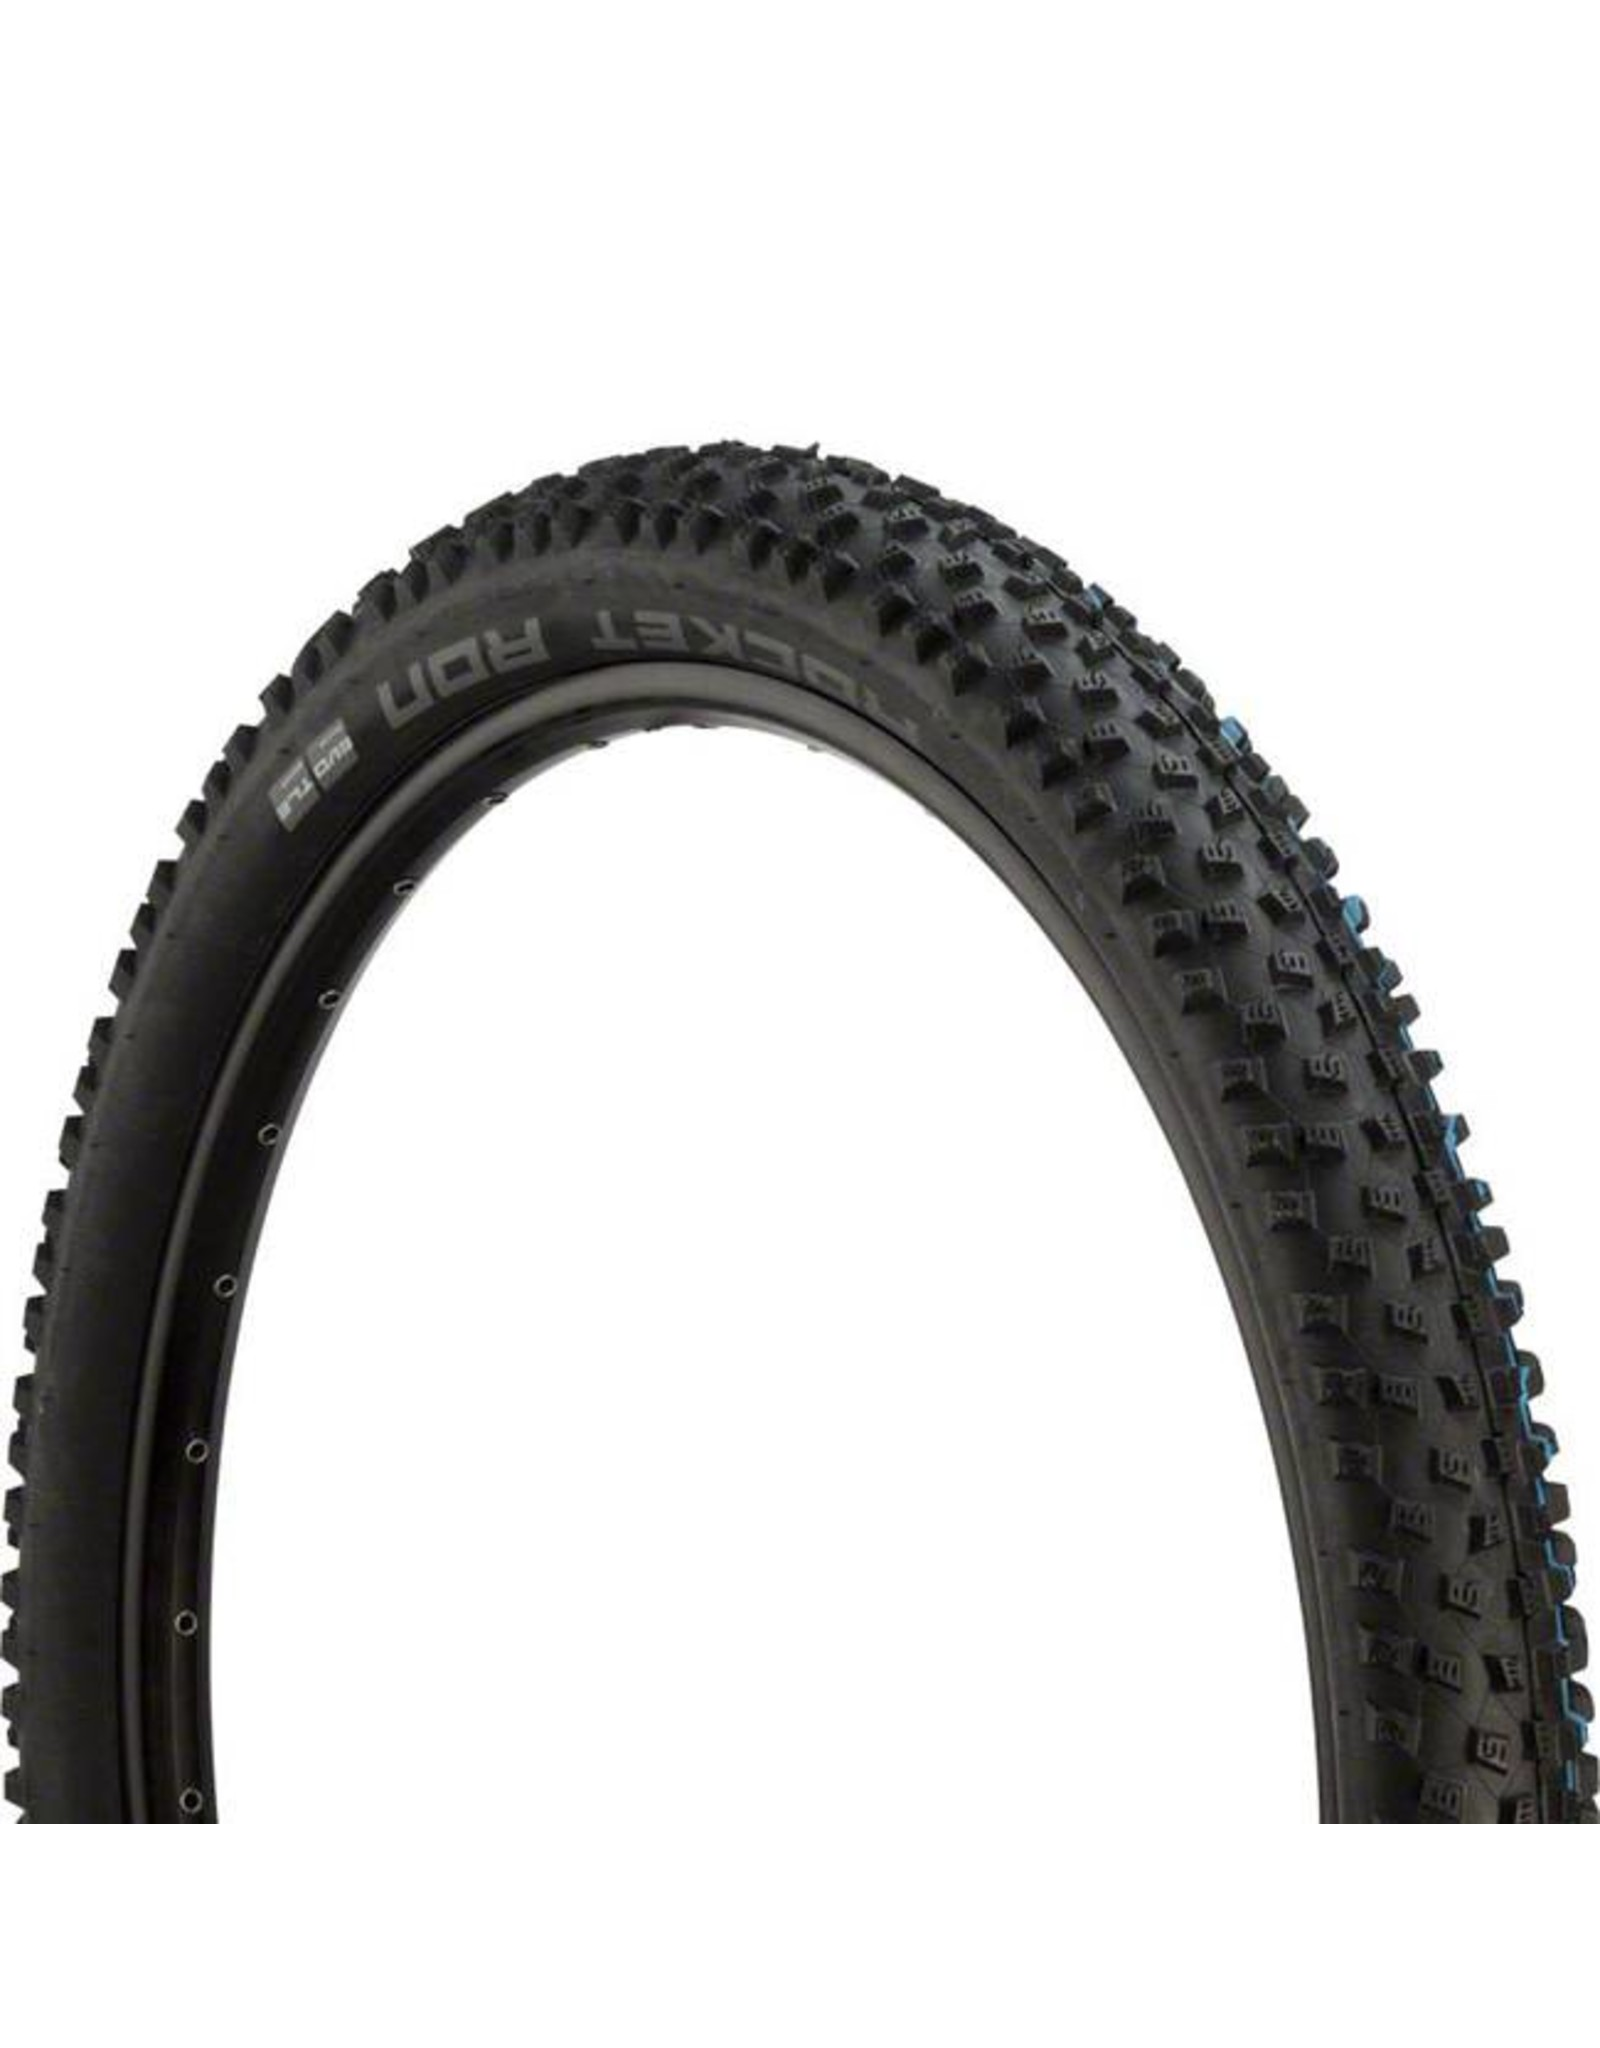 "Schwalbe Schwalbe Rocket Ron Tire: 29 x 2.25"", Folding Bead, Evolution Line, Addix SpeedGrip Compound, SnakeSkin, Tubeless Easy, Black"